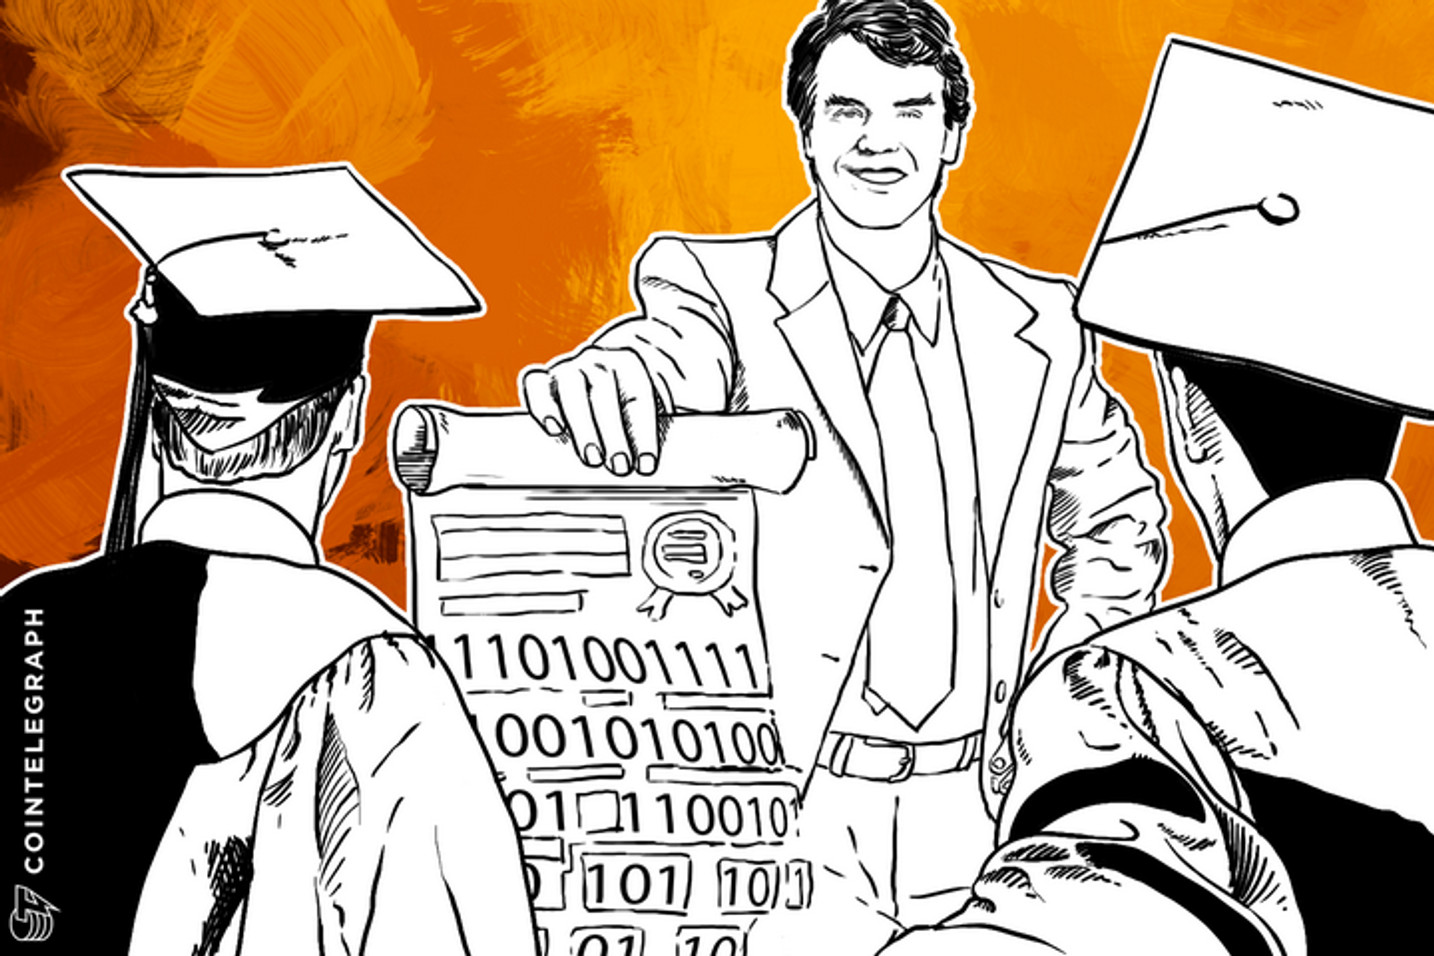 BitProof: 17-Year-Old Entrepreneur Brings University Diplomas to the Blockchain